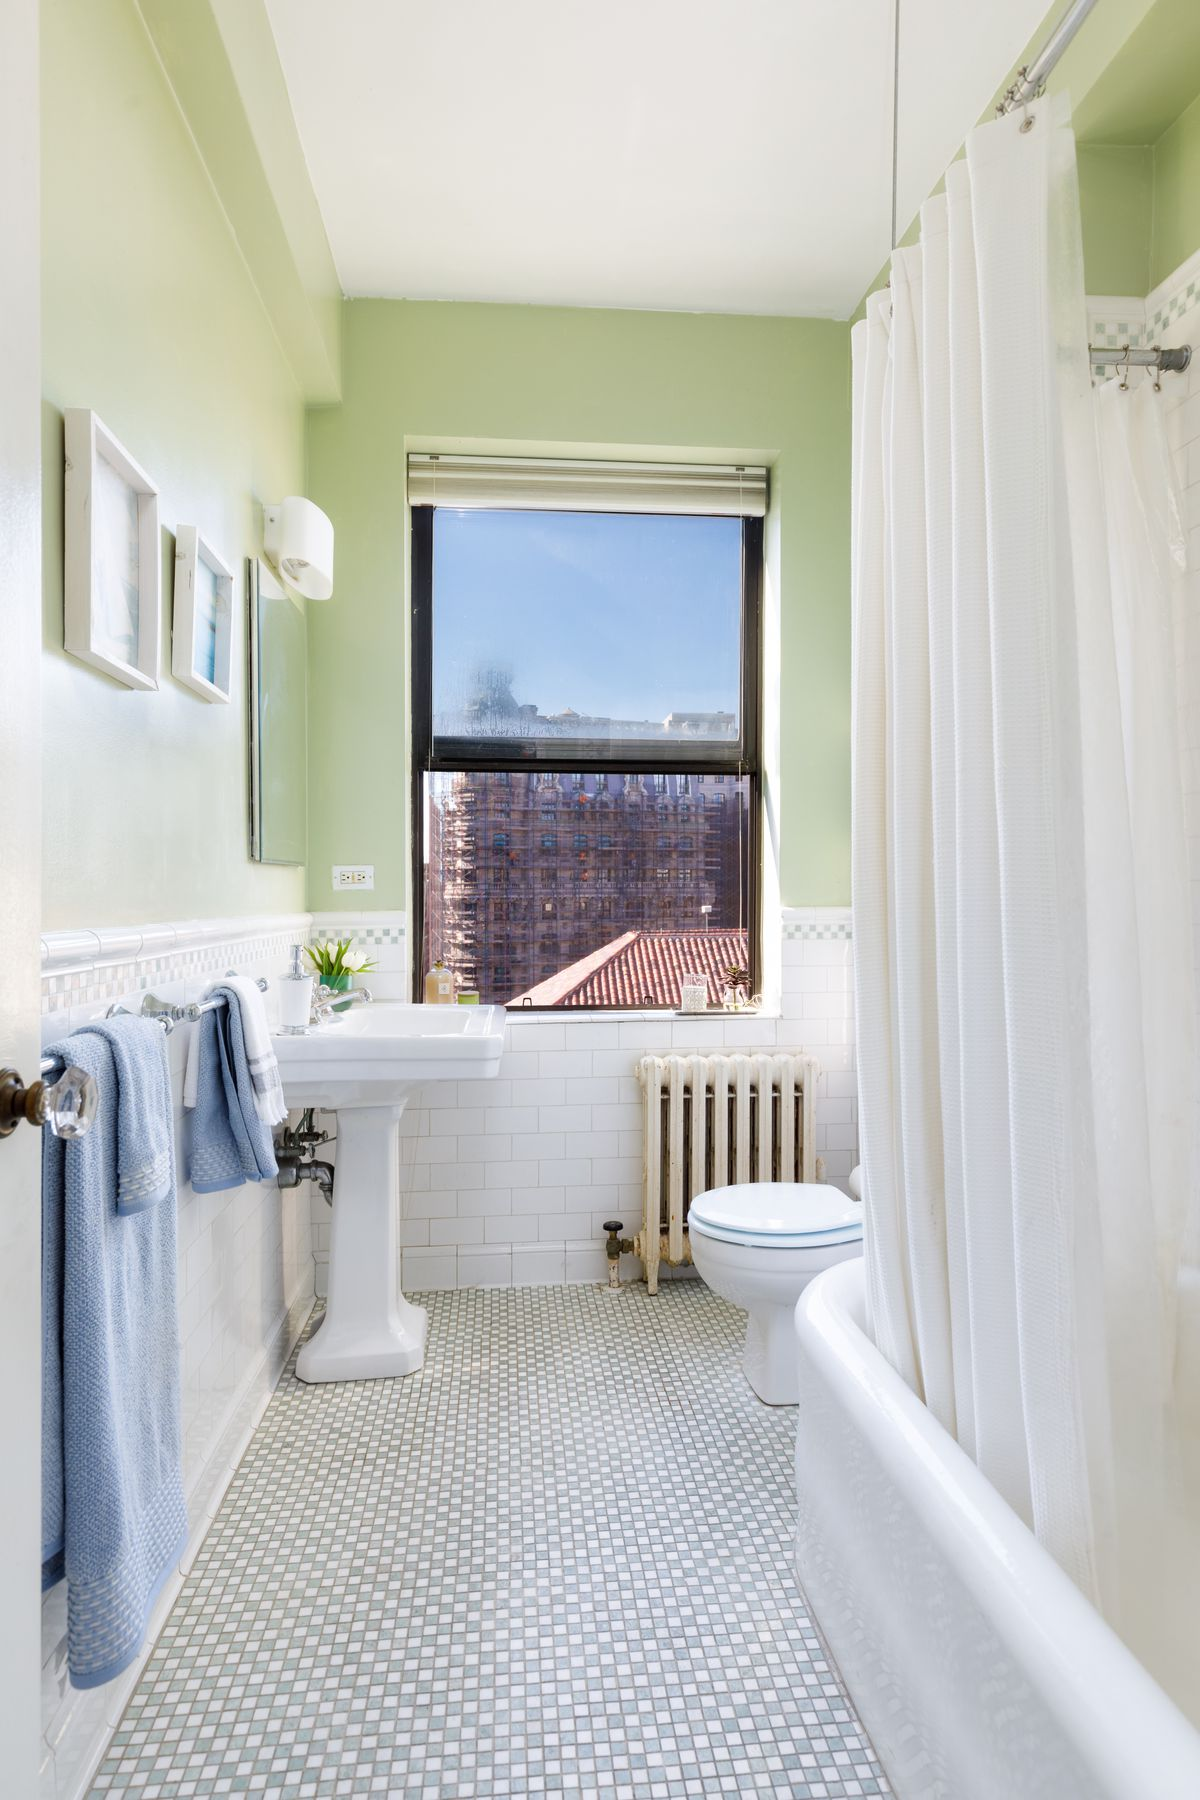 A bathroom with light green walls, a mosaic floor, and a window.